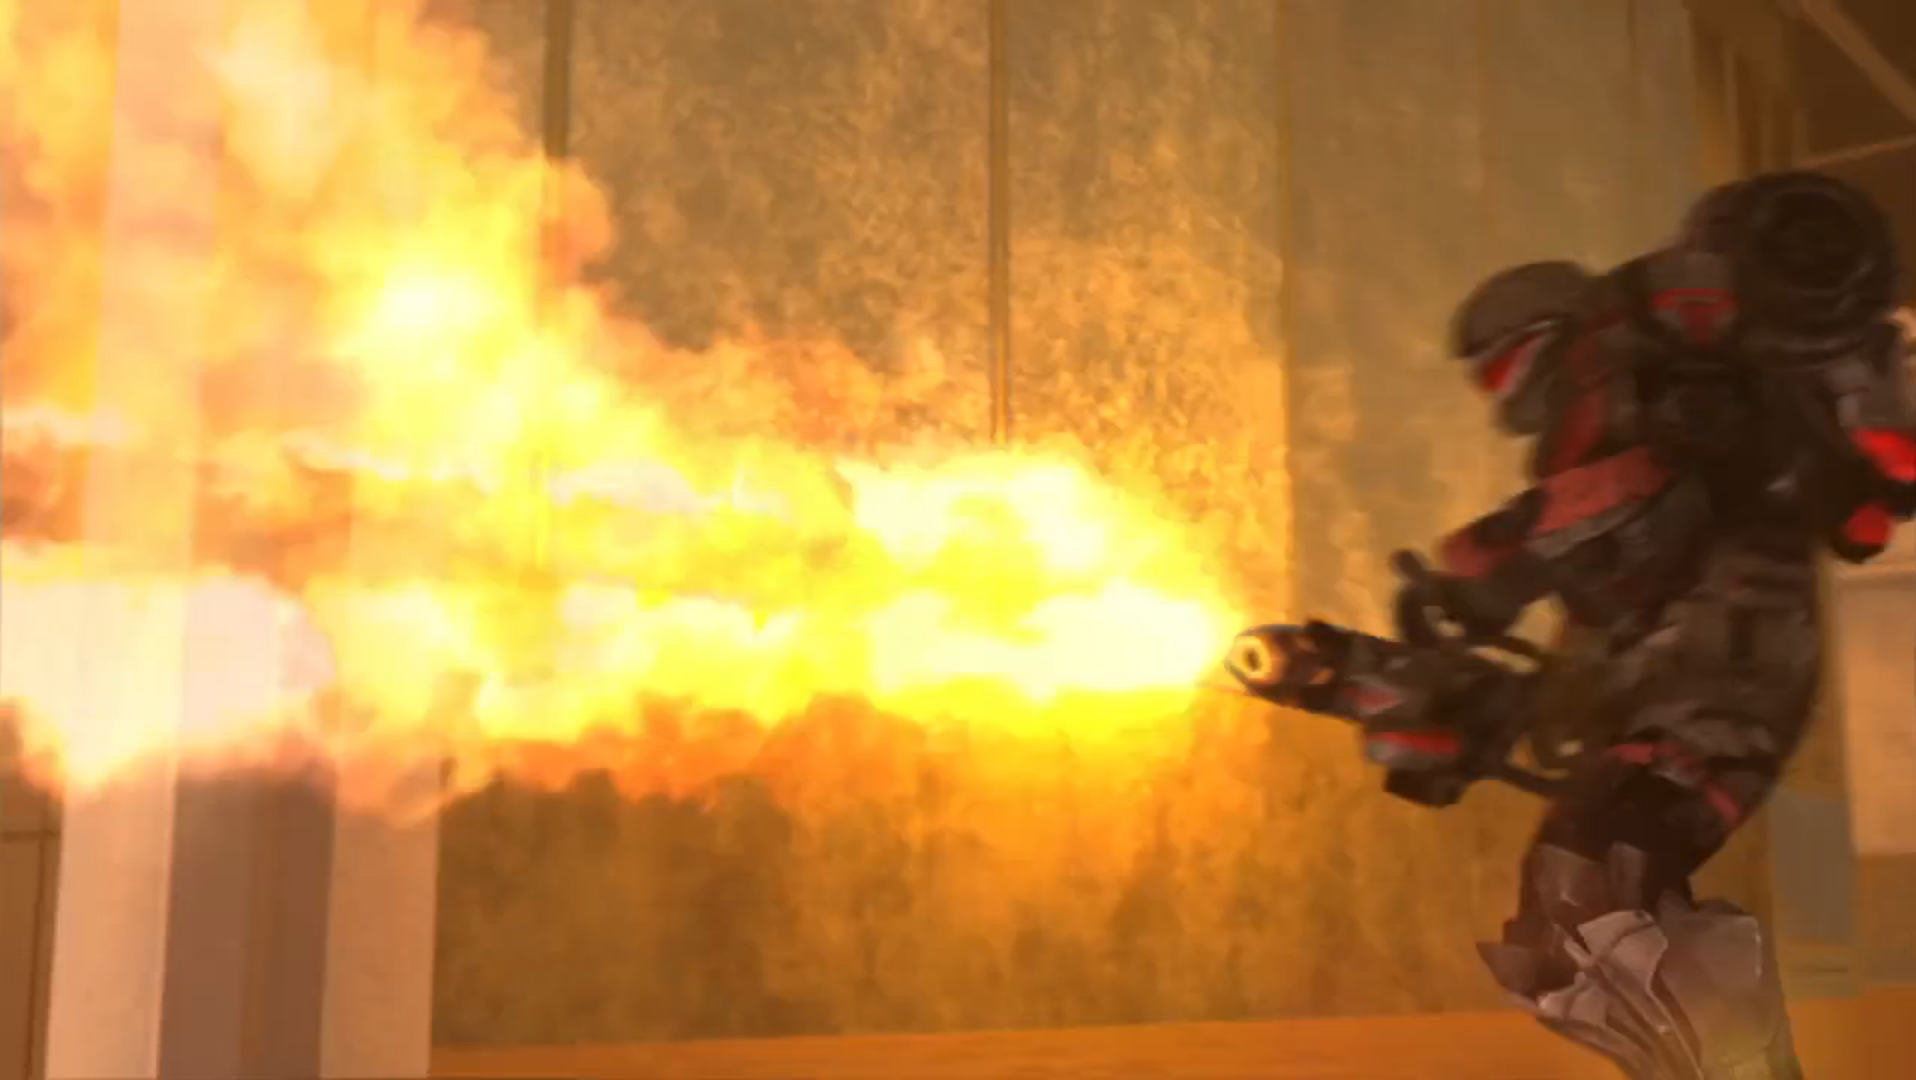 Flamethrower   Red vs. Blue Wiki   FANDOM powered by Wikia   1916 x 1080 png 799kB